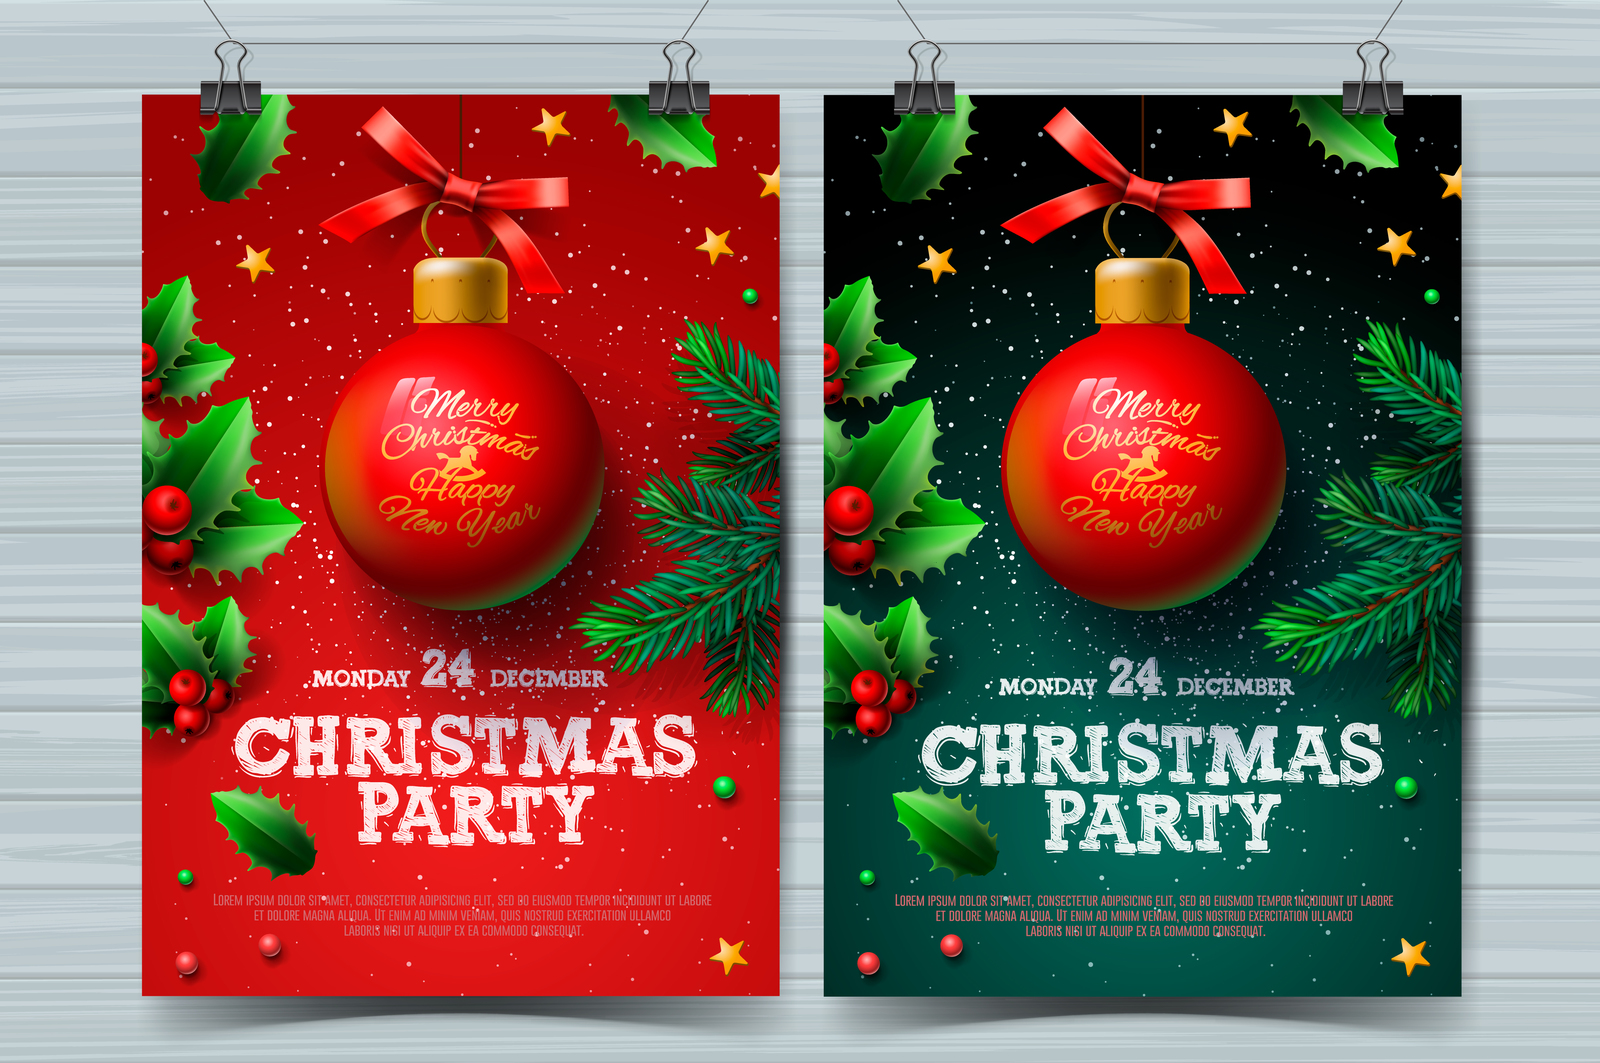 Christmas party design templates